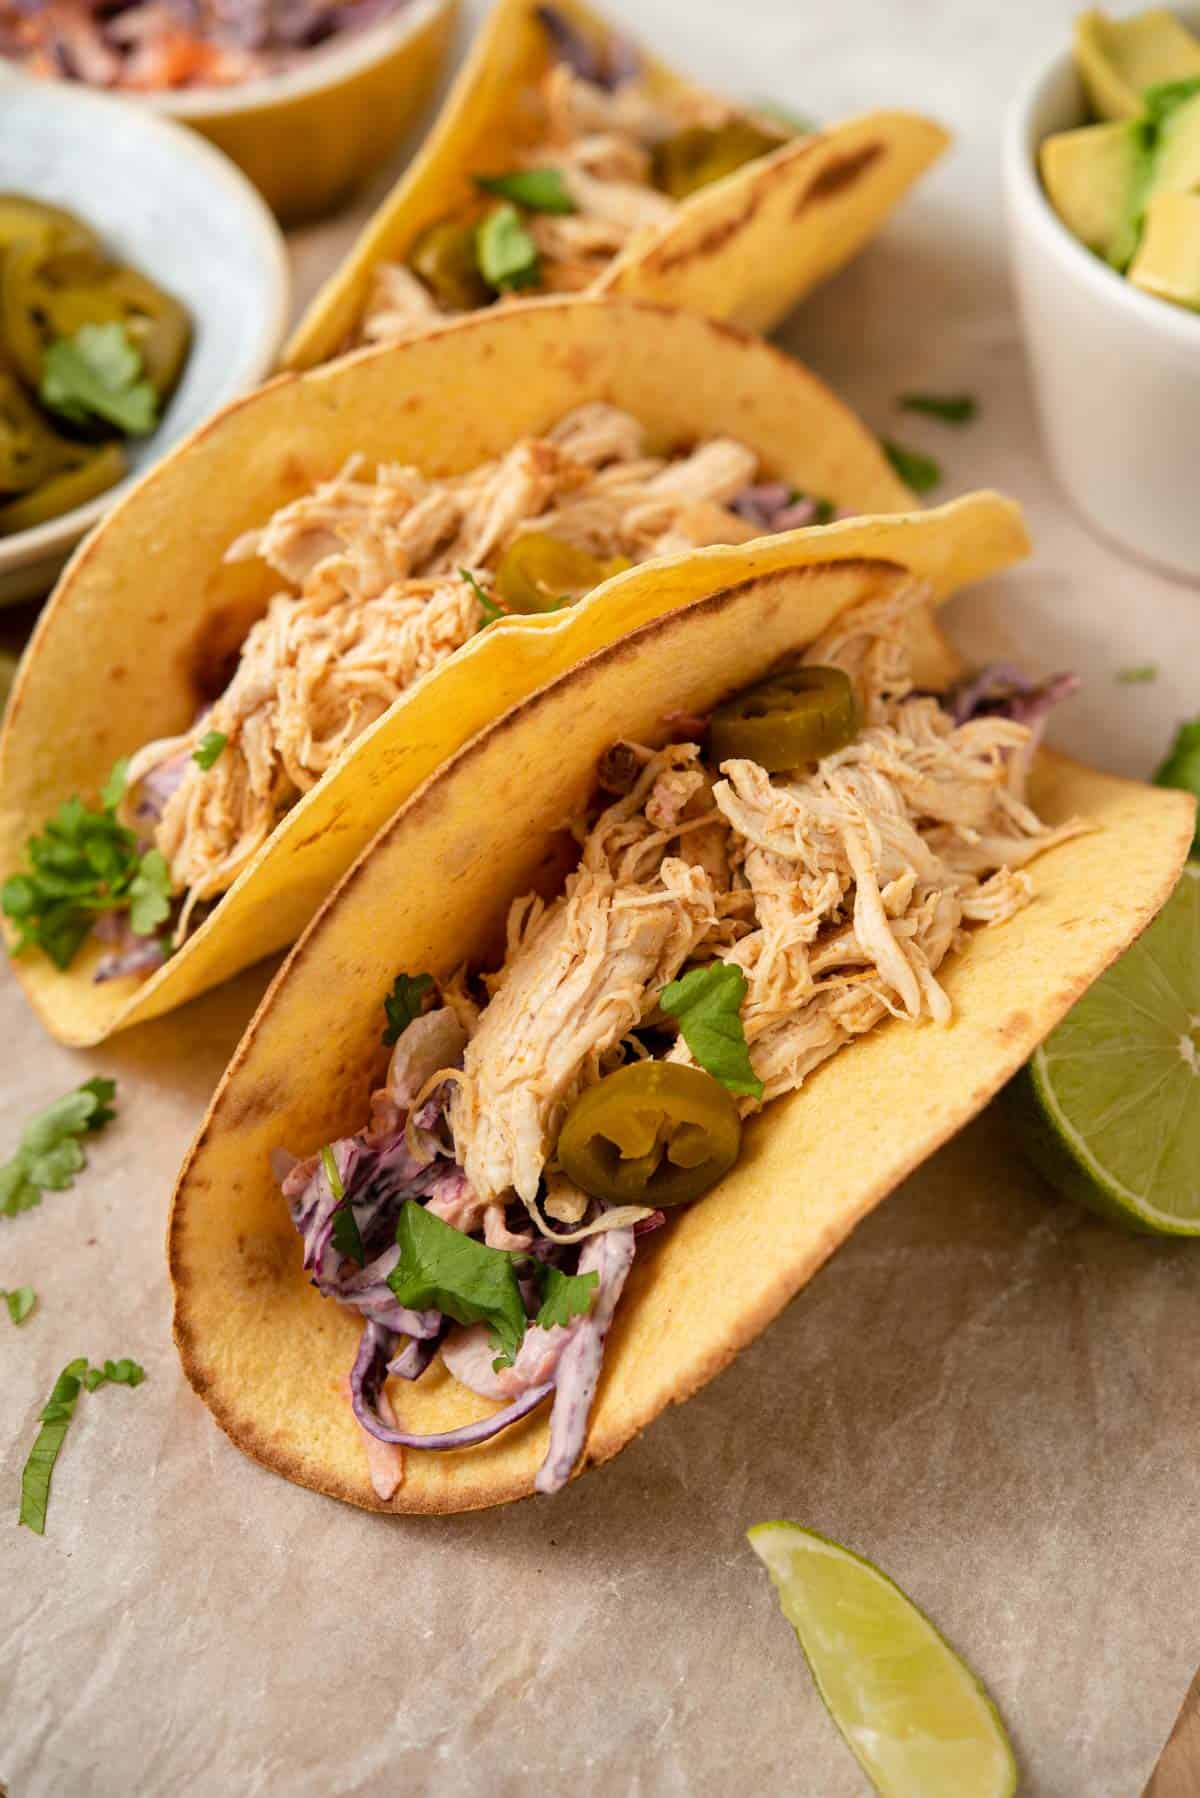 A close up of a chicken taco